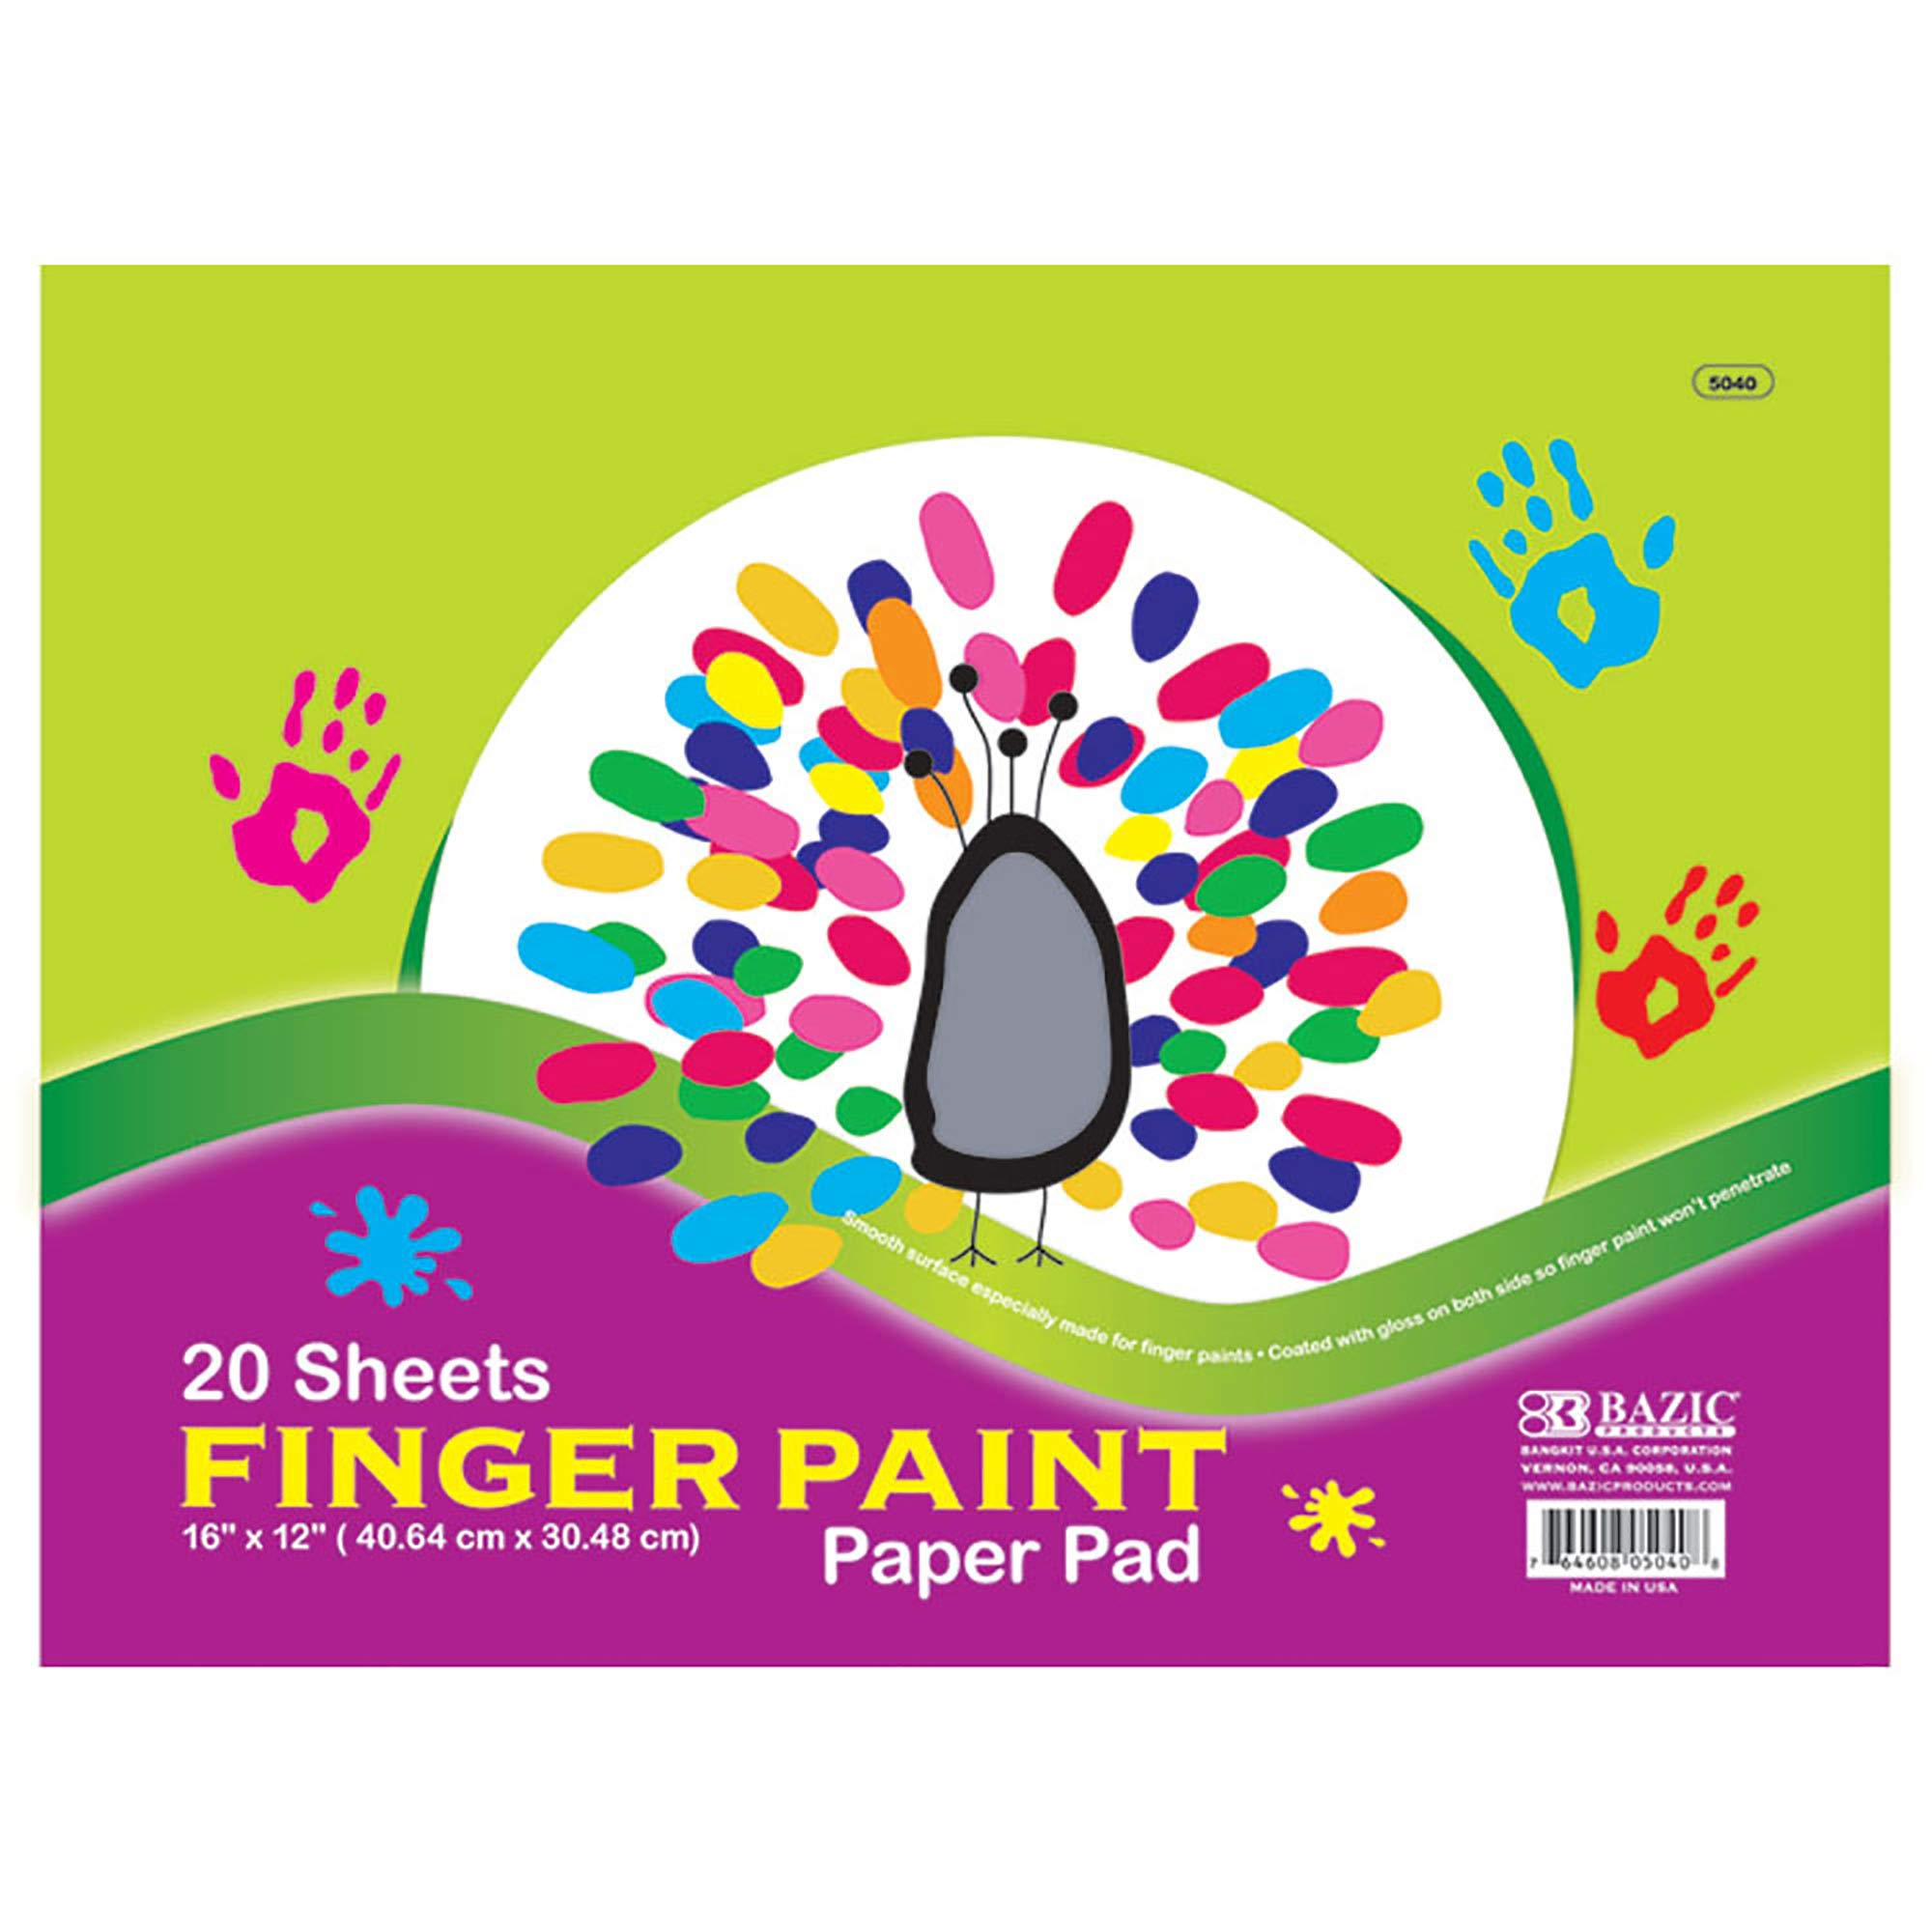 BAZIC 20 Ct. 16'' X 12'' Finger Paint Paper Pad (Case of 48) by B BAZIC PRODUCTS